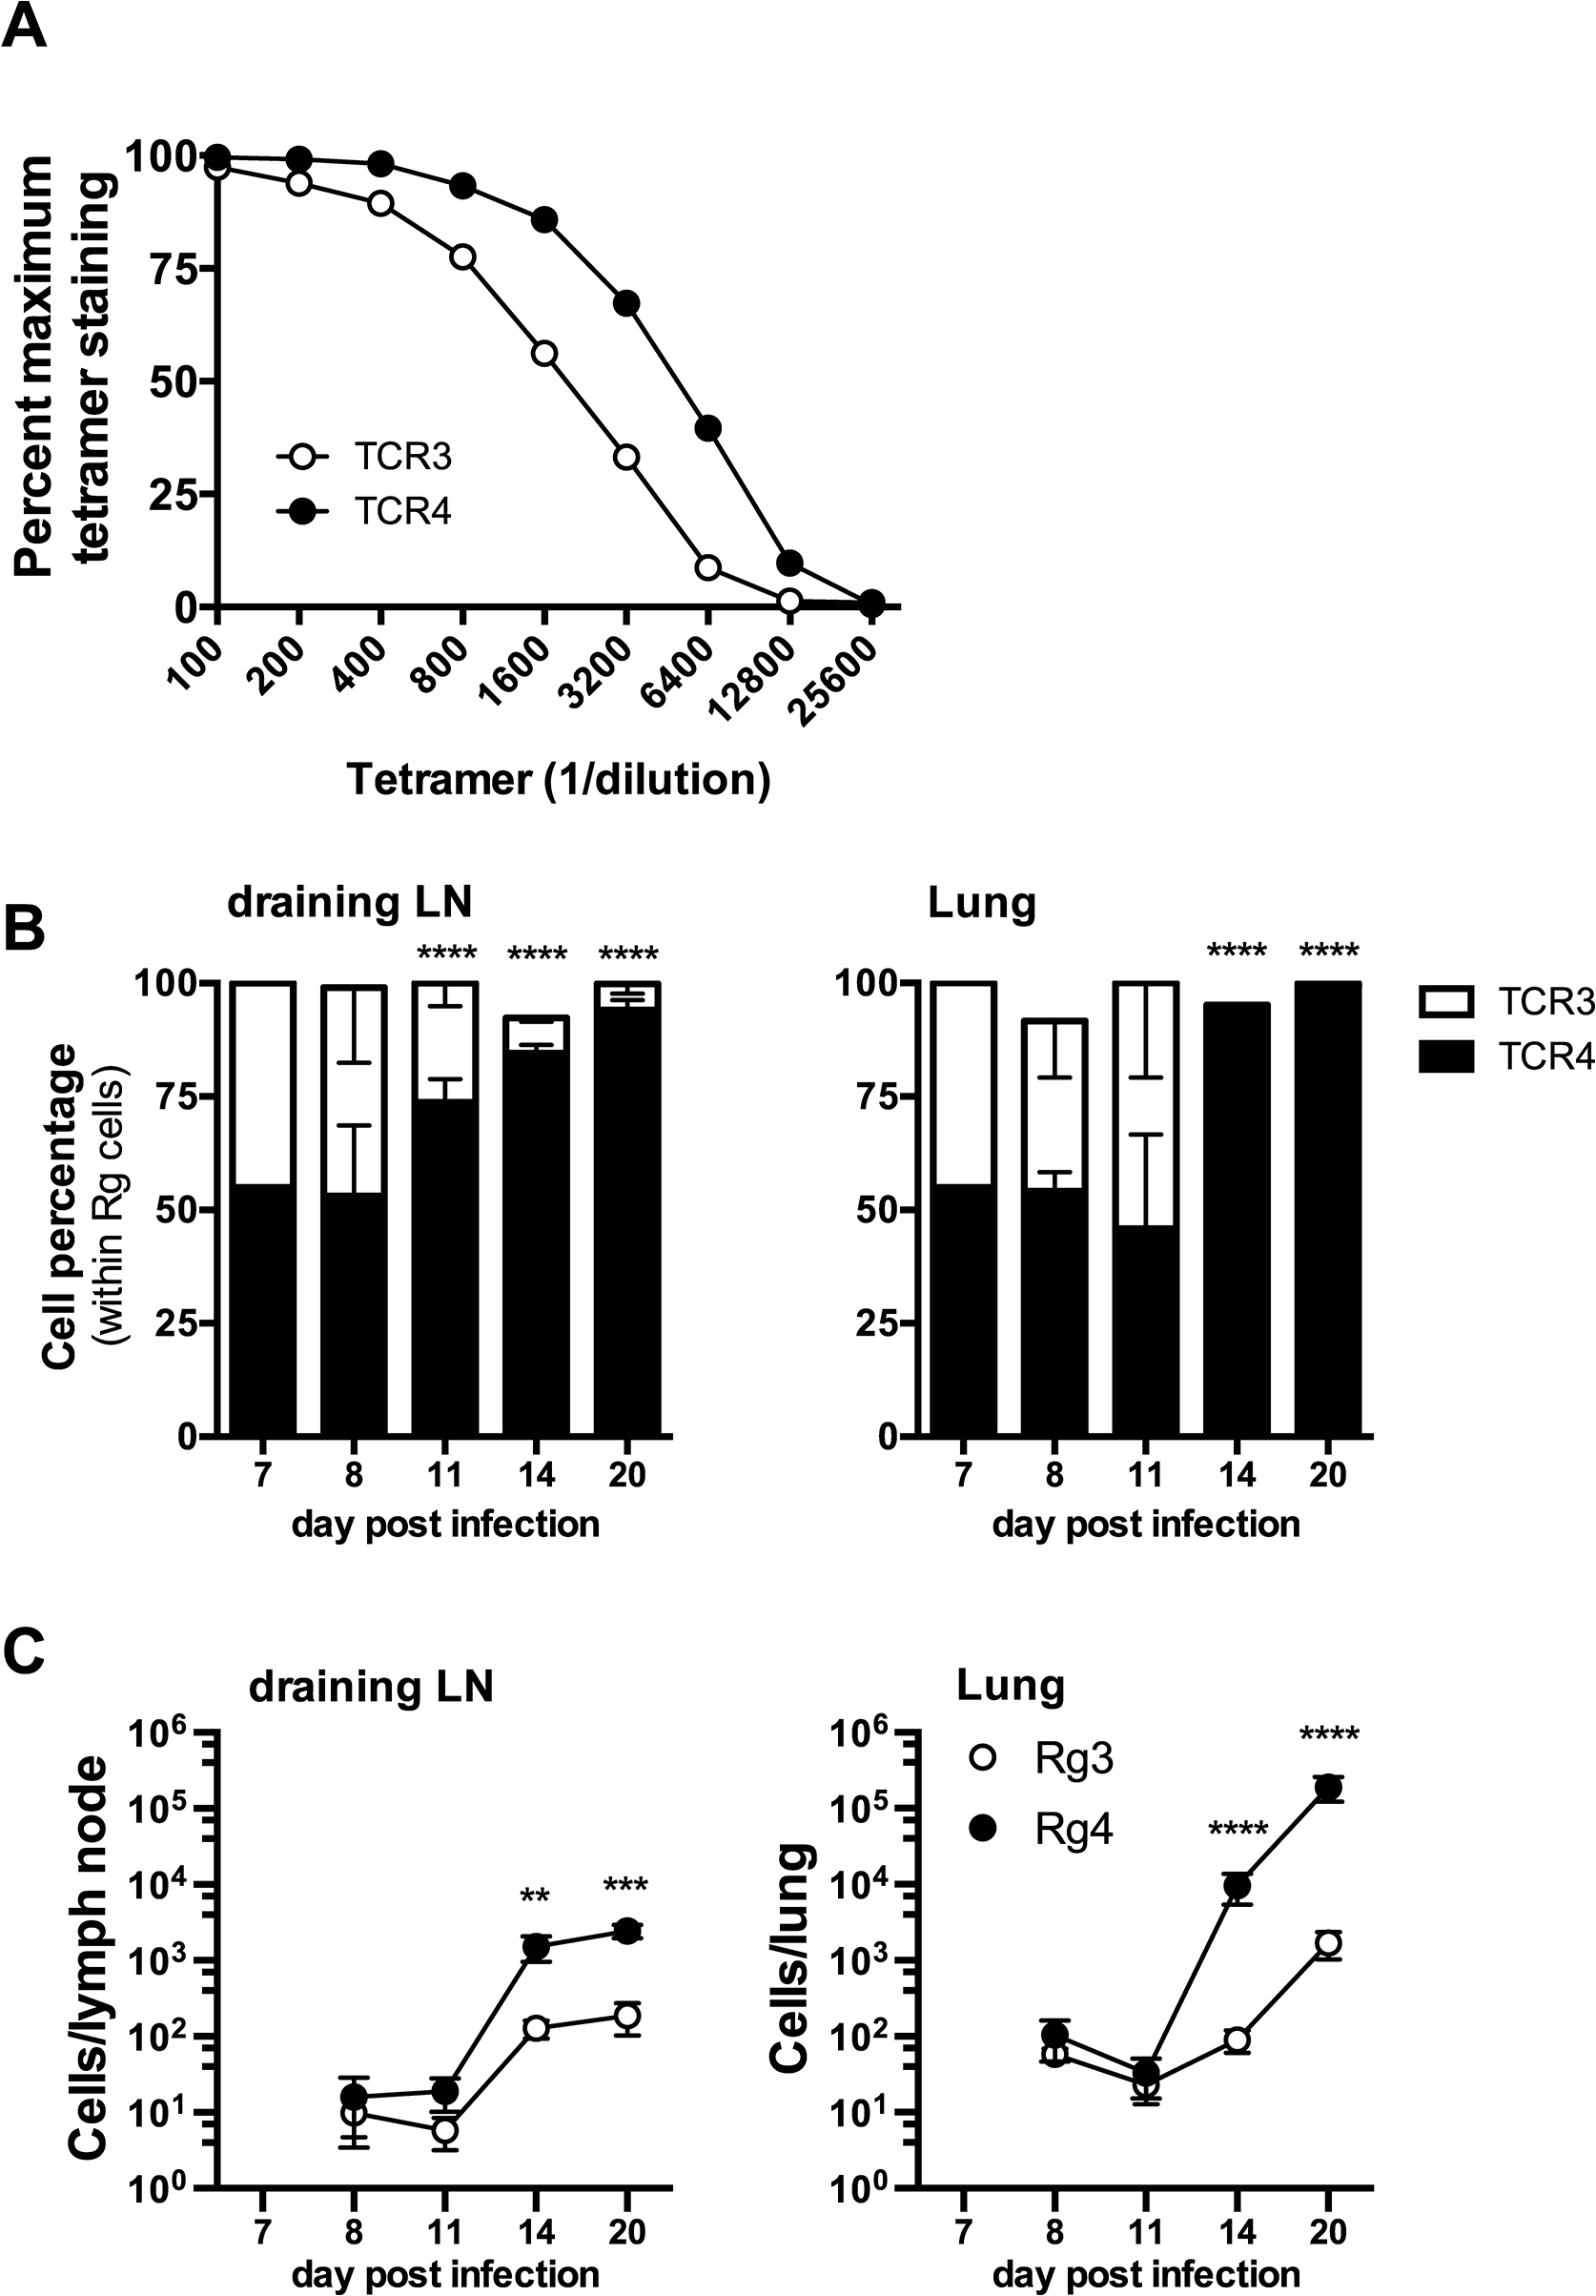 Differences in TCR affinity can lead to clonotypic dominance during infection.